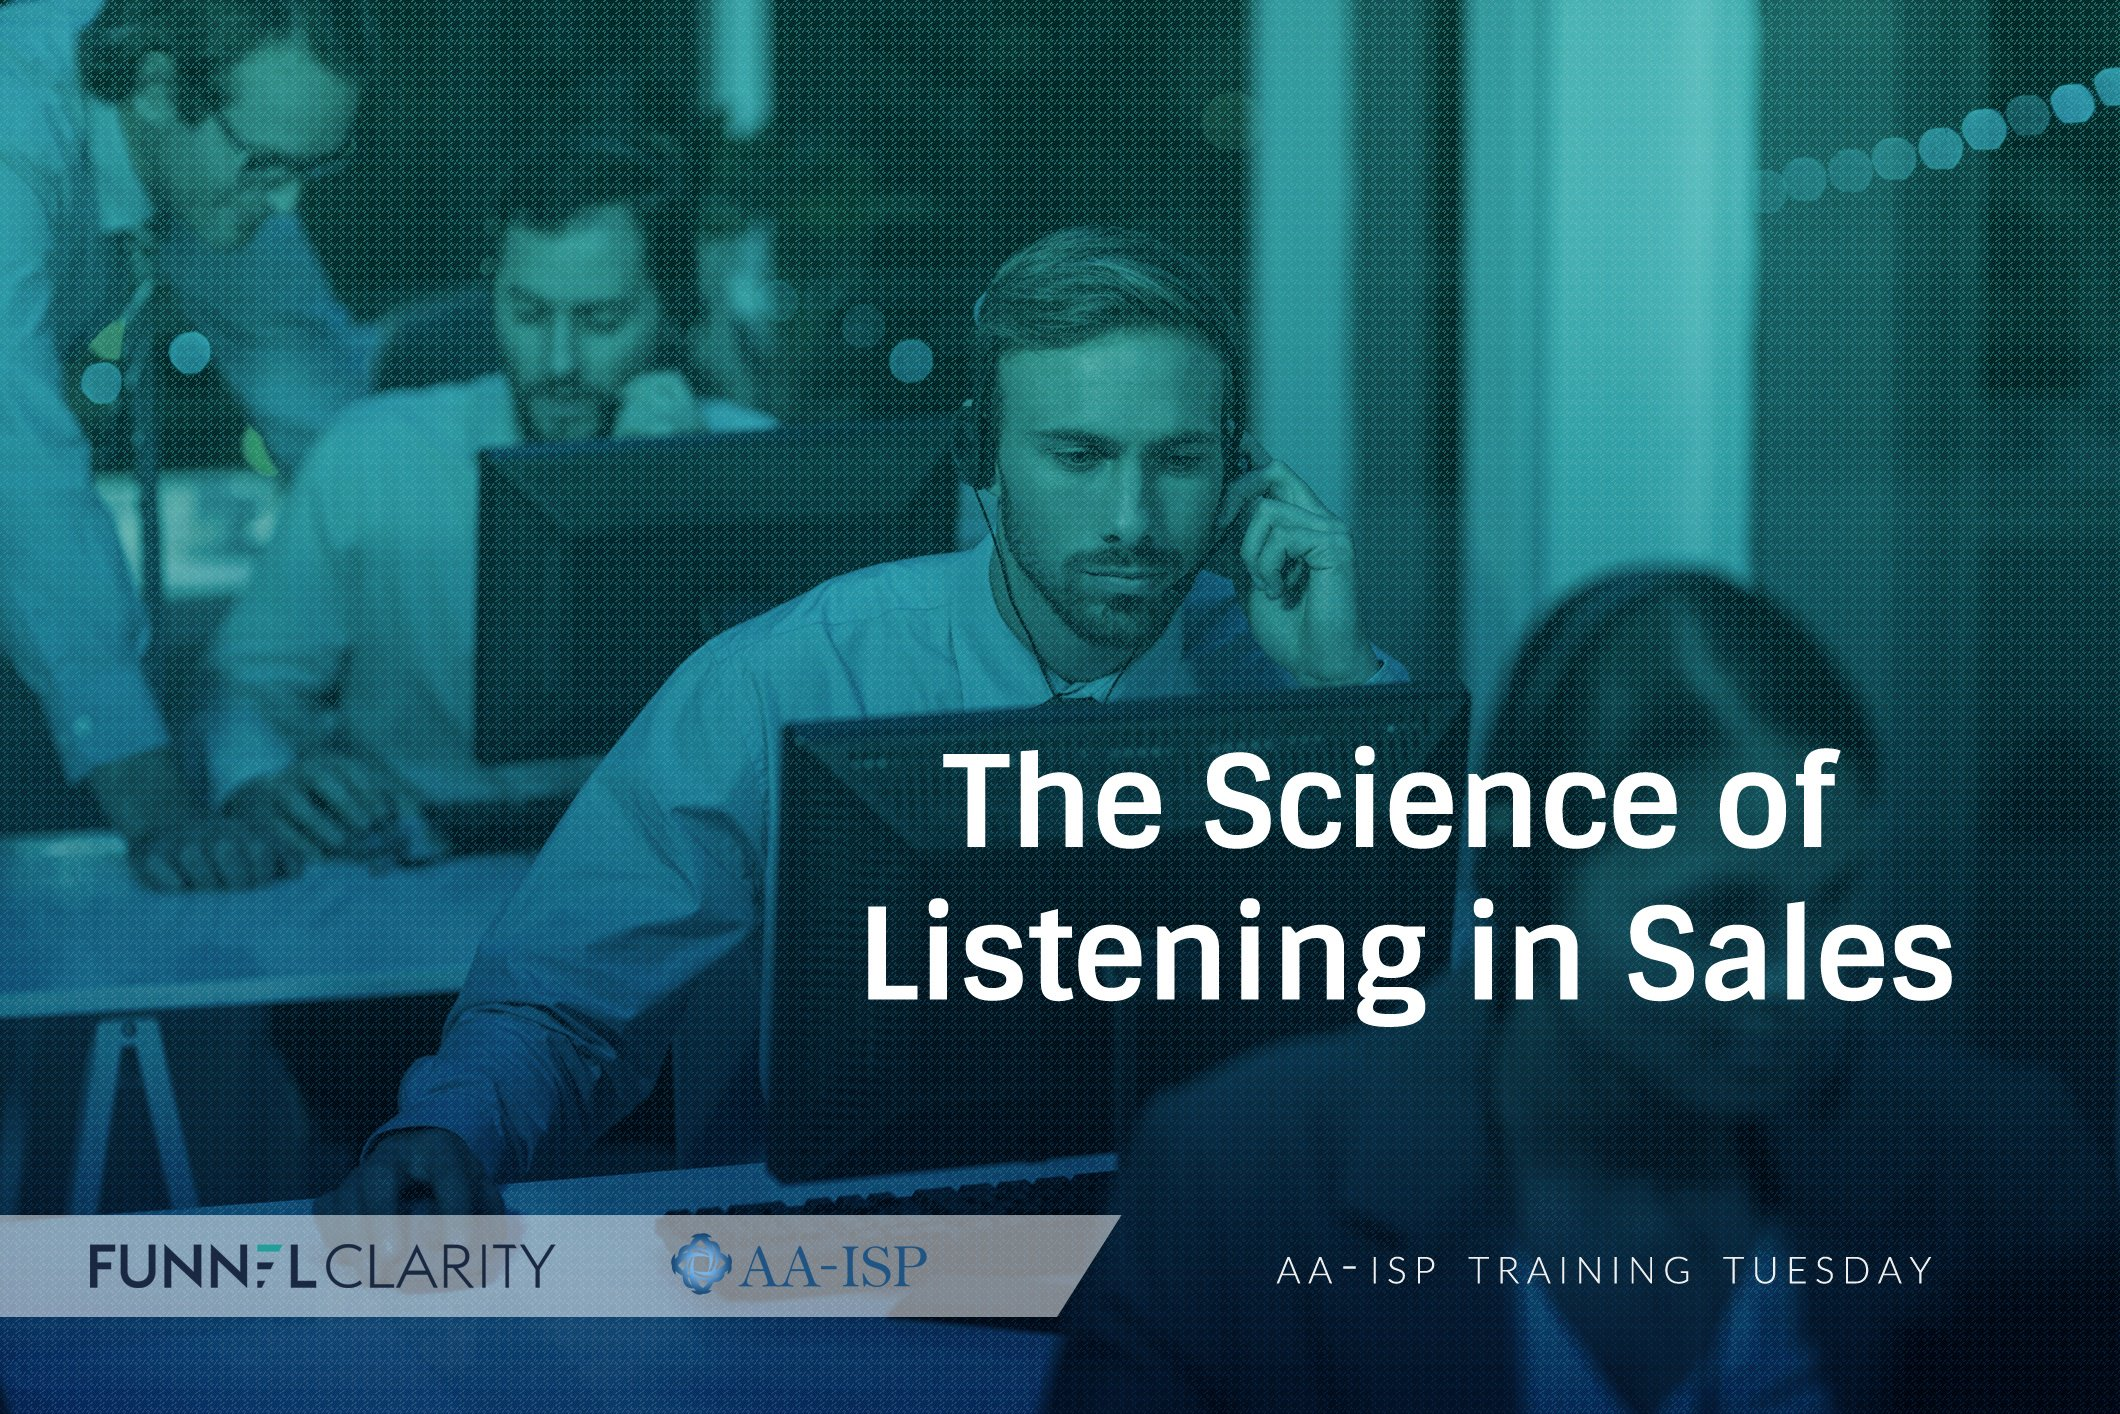 www.funnelclarity.comhs-fshubfsContentWebinarsScience_of_Listeningscience-of-listening-cover